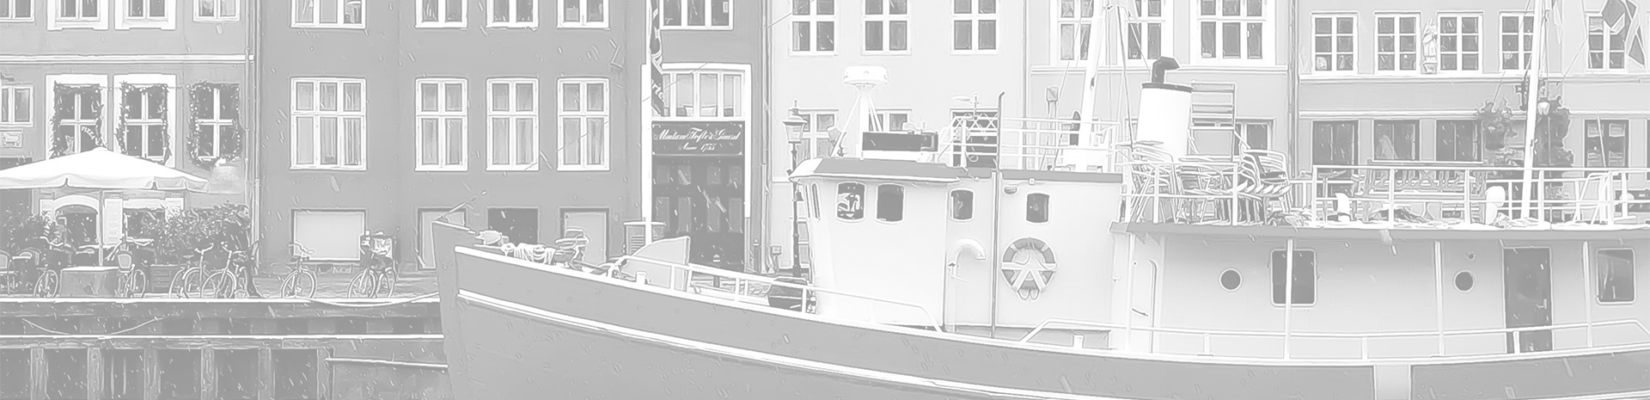 Transparent-Gray Background of Ship Docked in a Town in Denmark